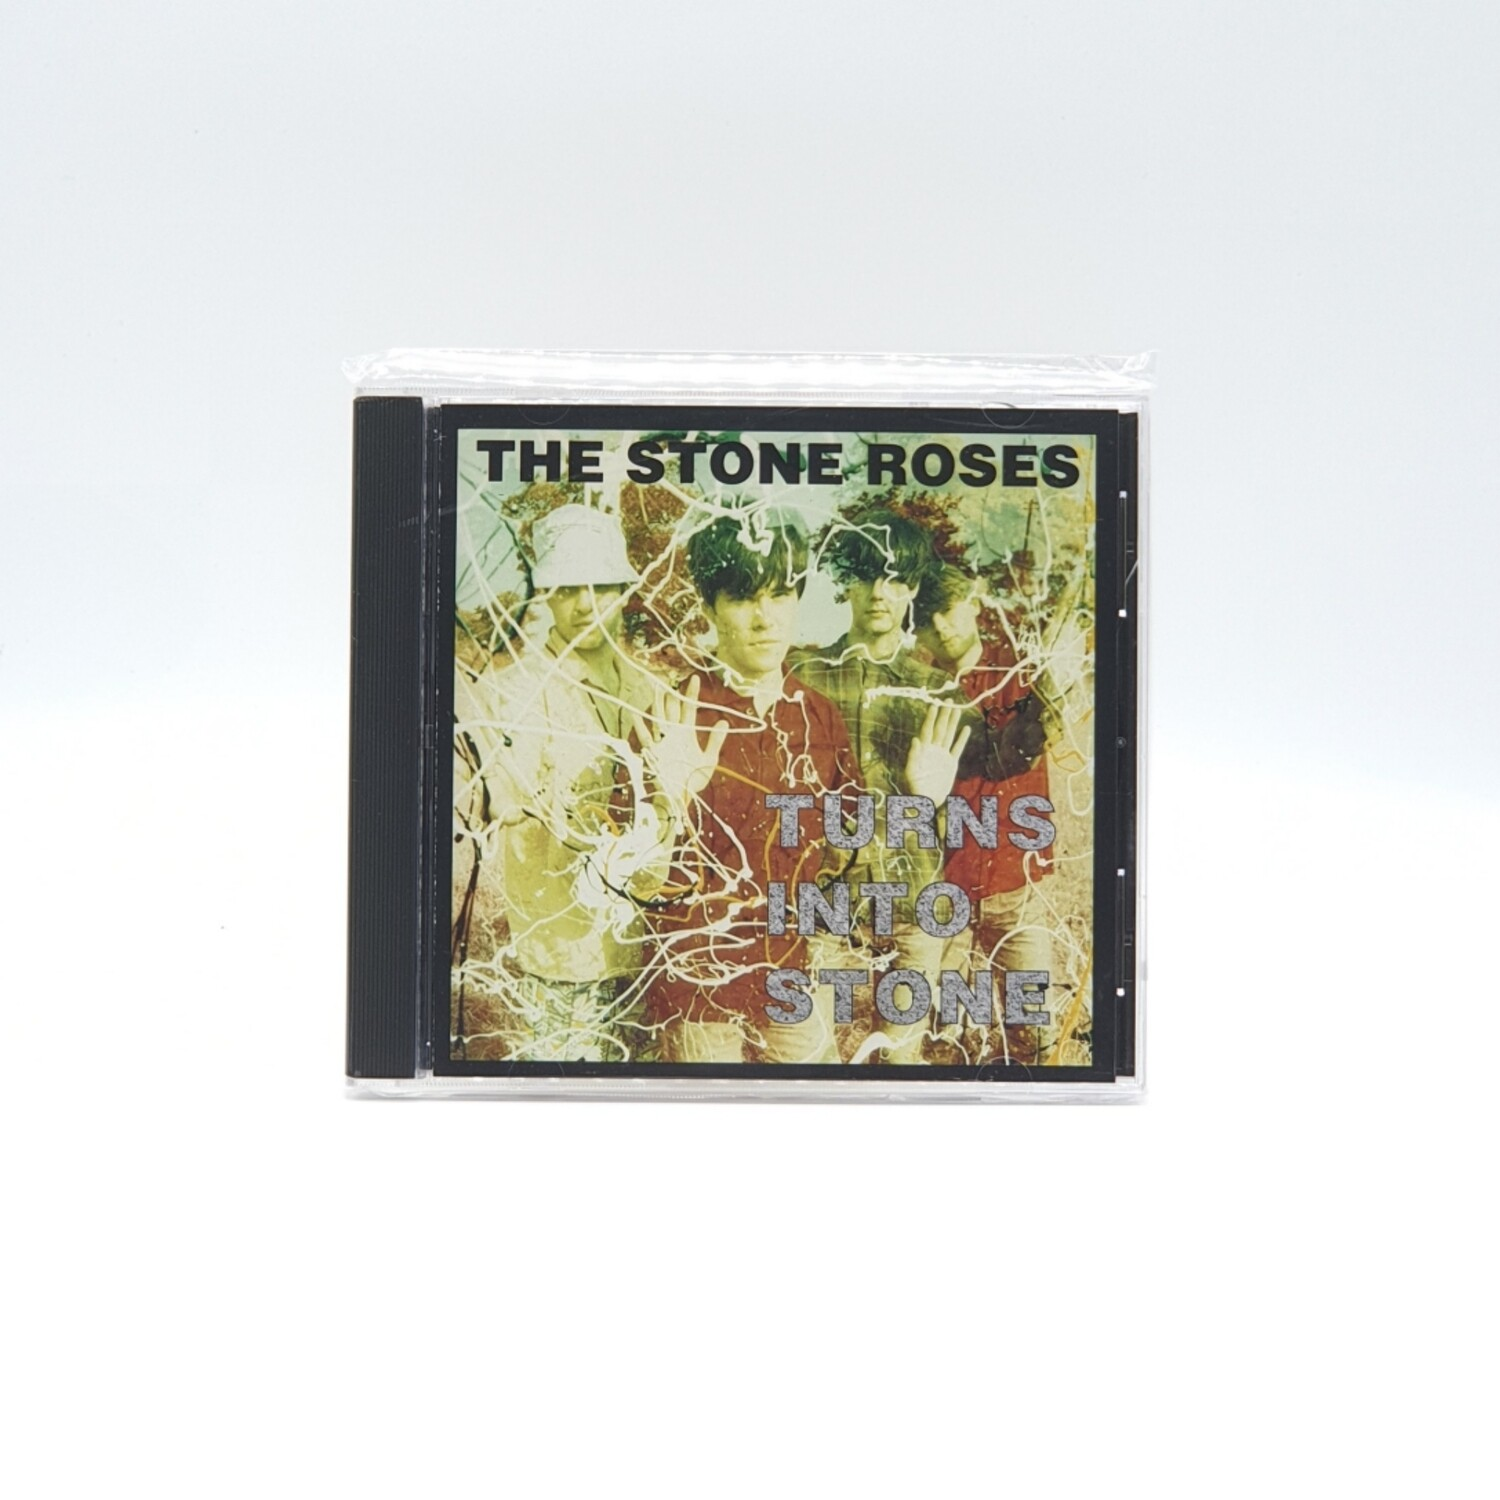 THE STONE ROSES - TURNS INTO STONE- CD